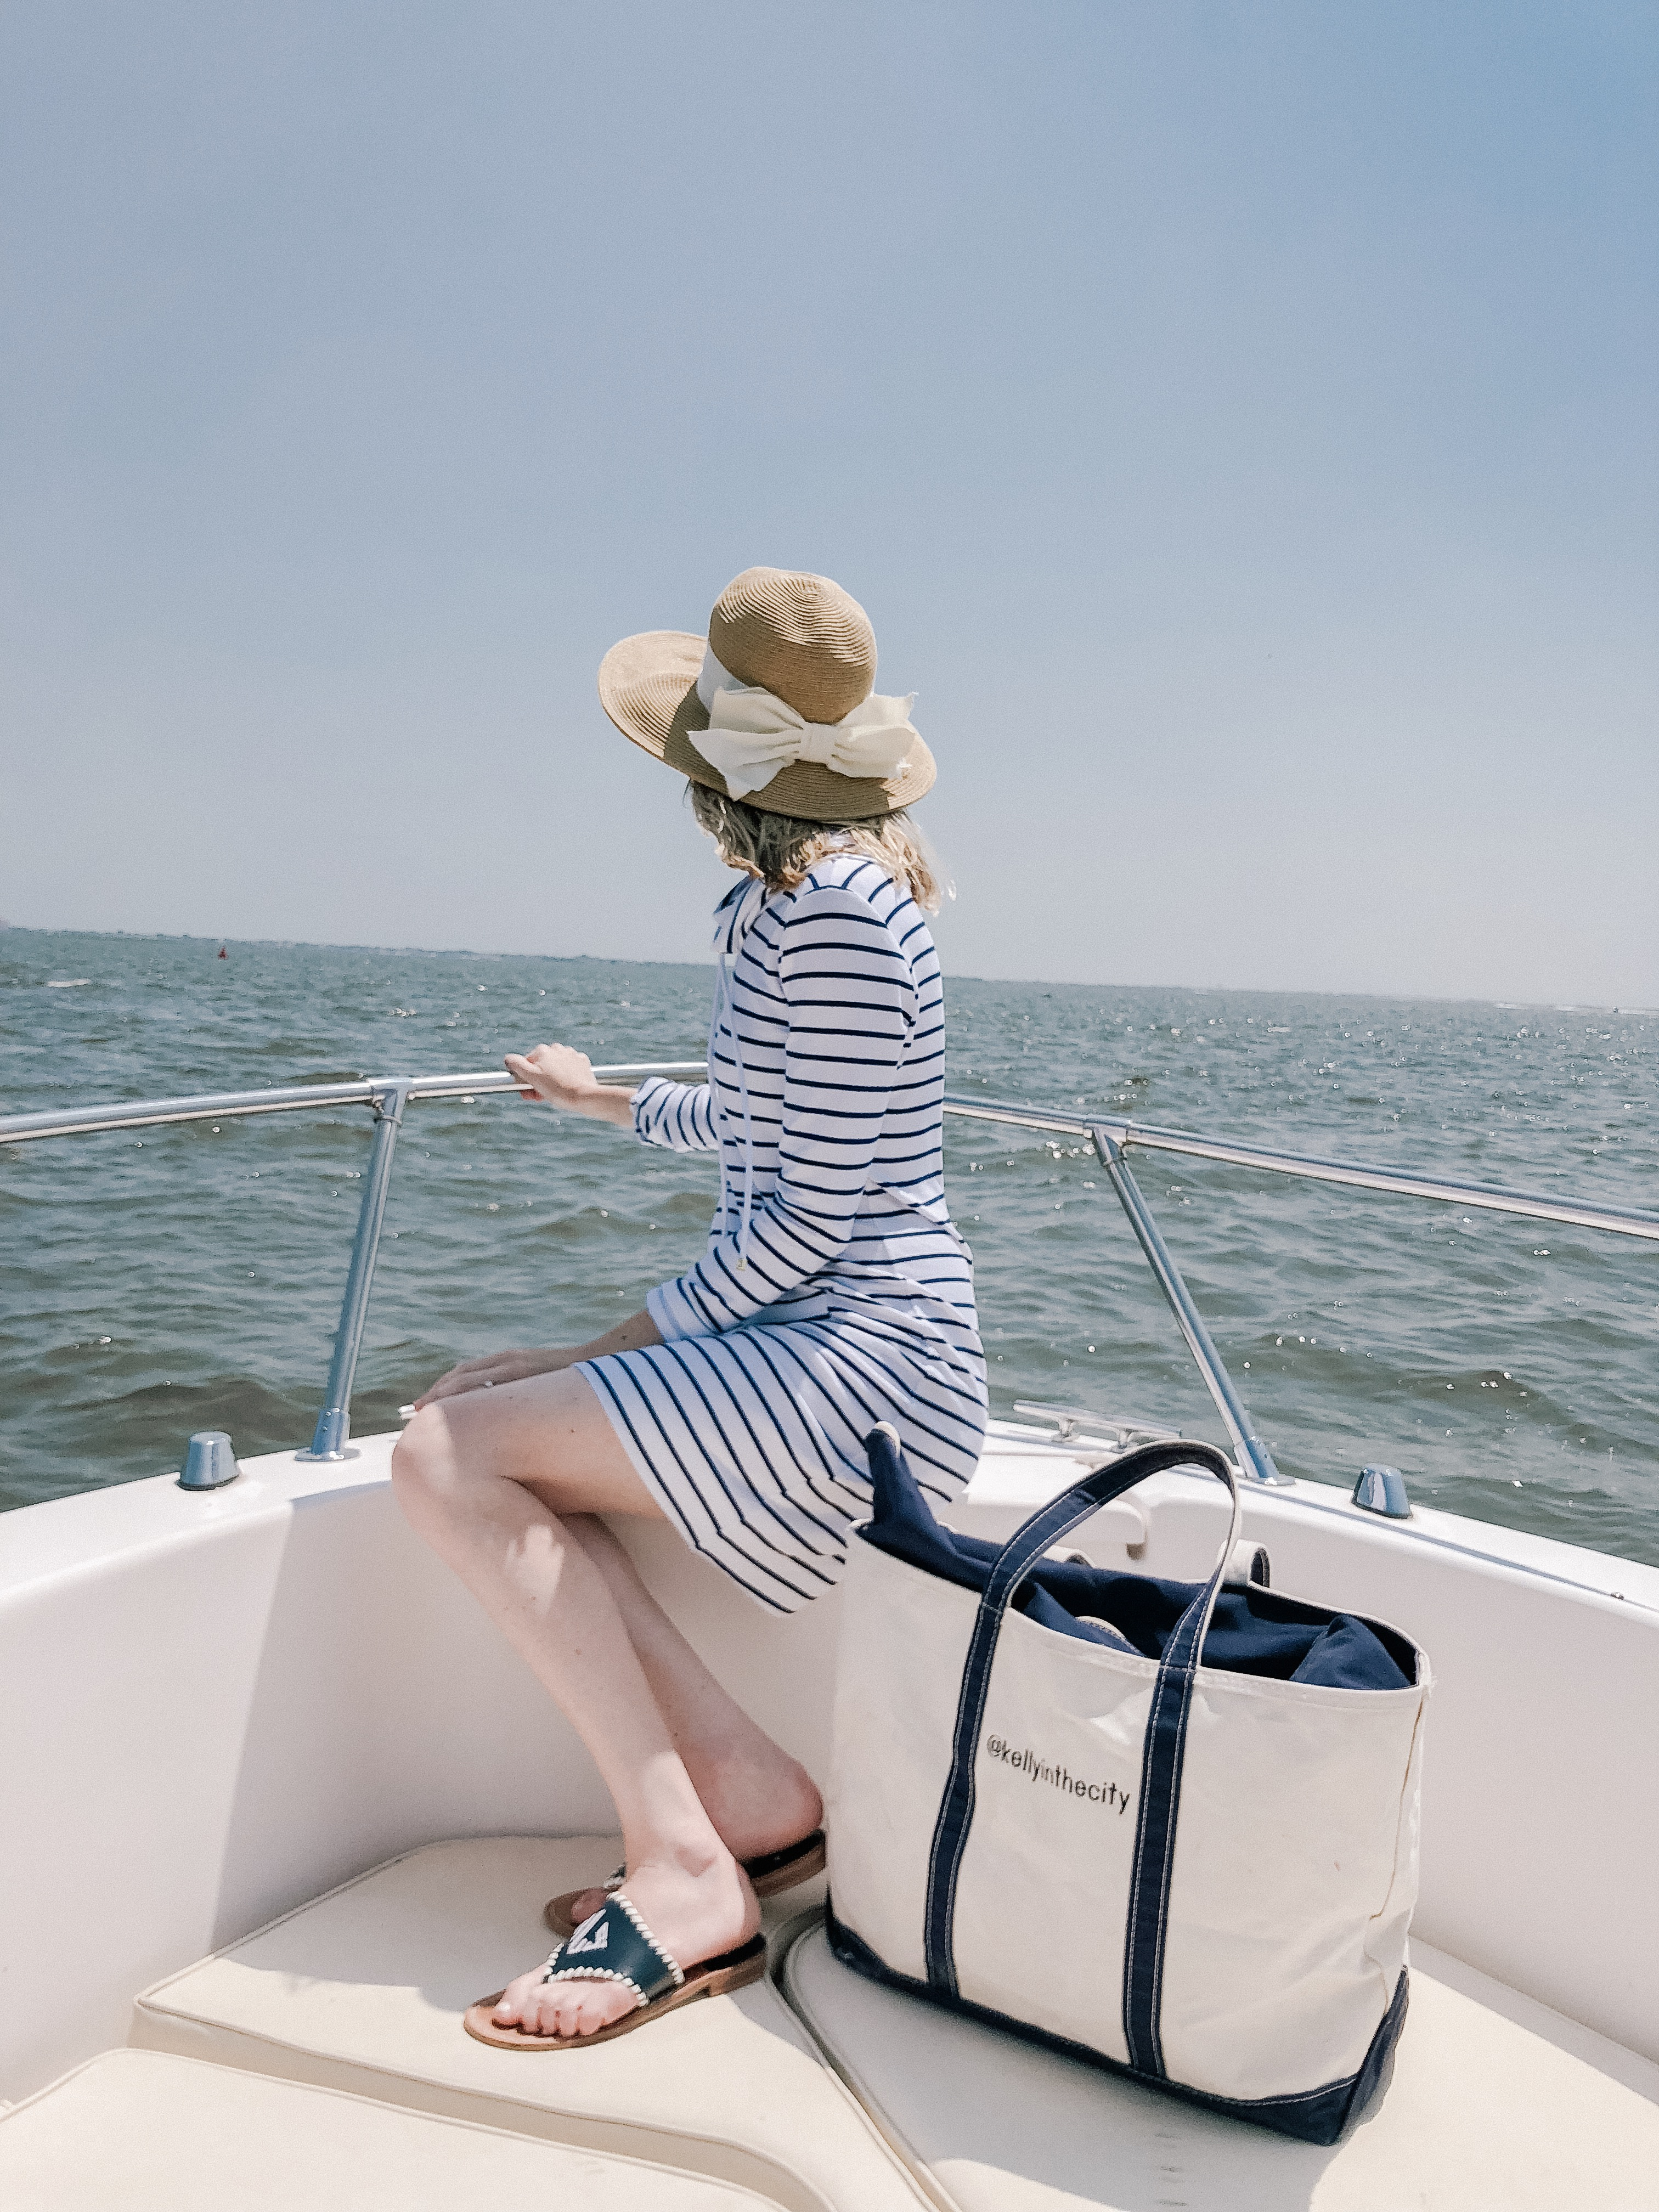 Lilly Pulitzer Striped Popover Dress   /Monogram Jack Rogers c/o  /Packable Bow Hat/ L.L.Bean Tote